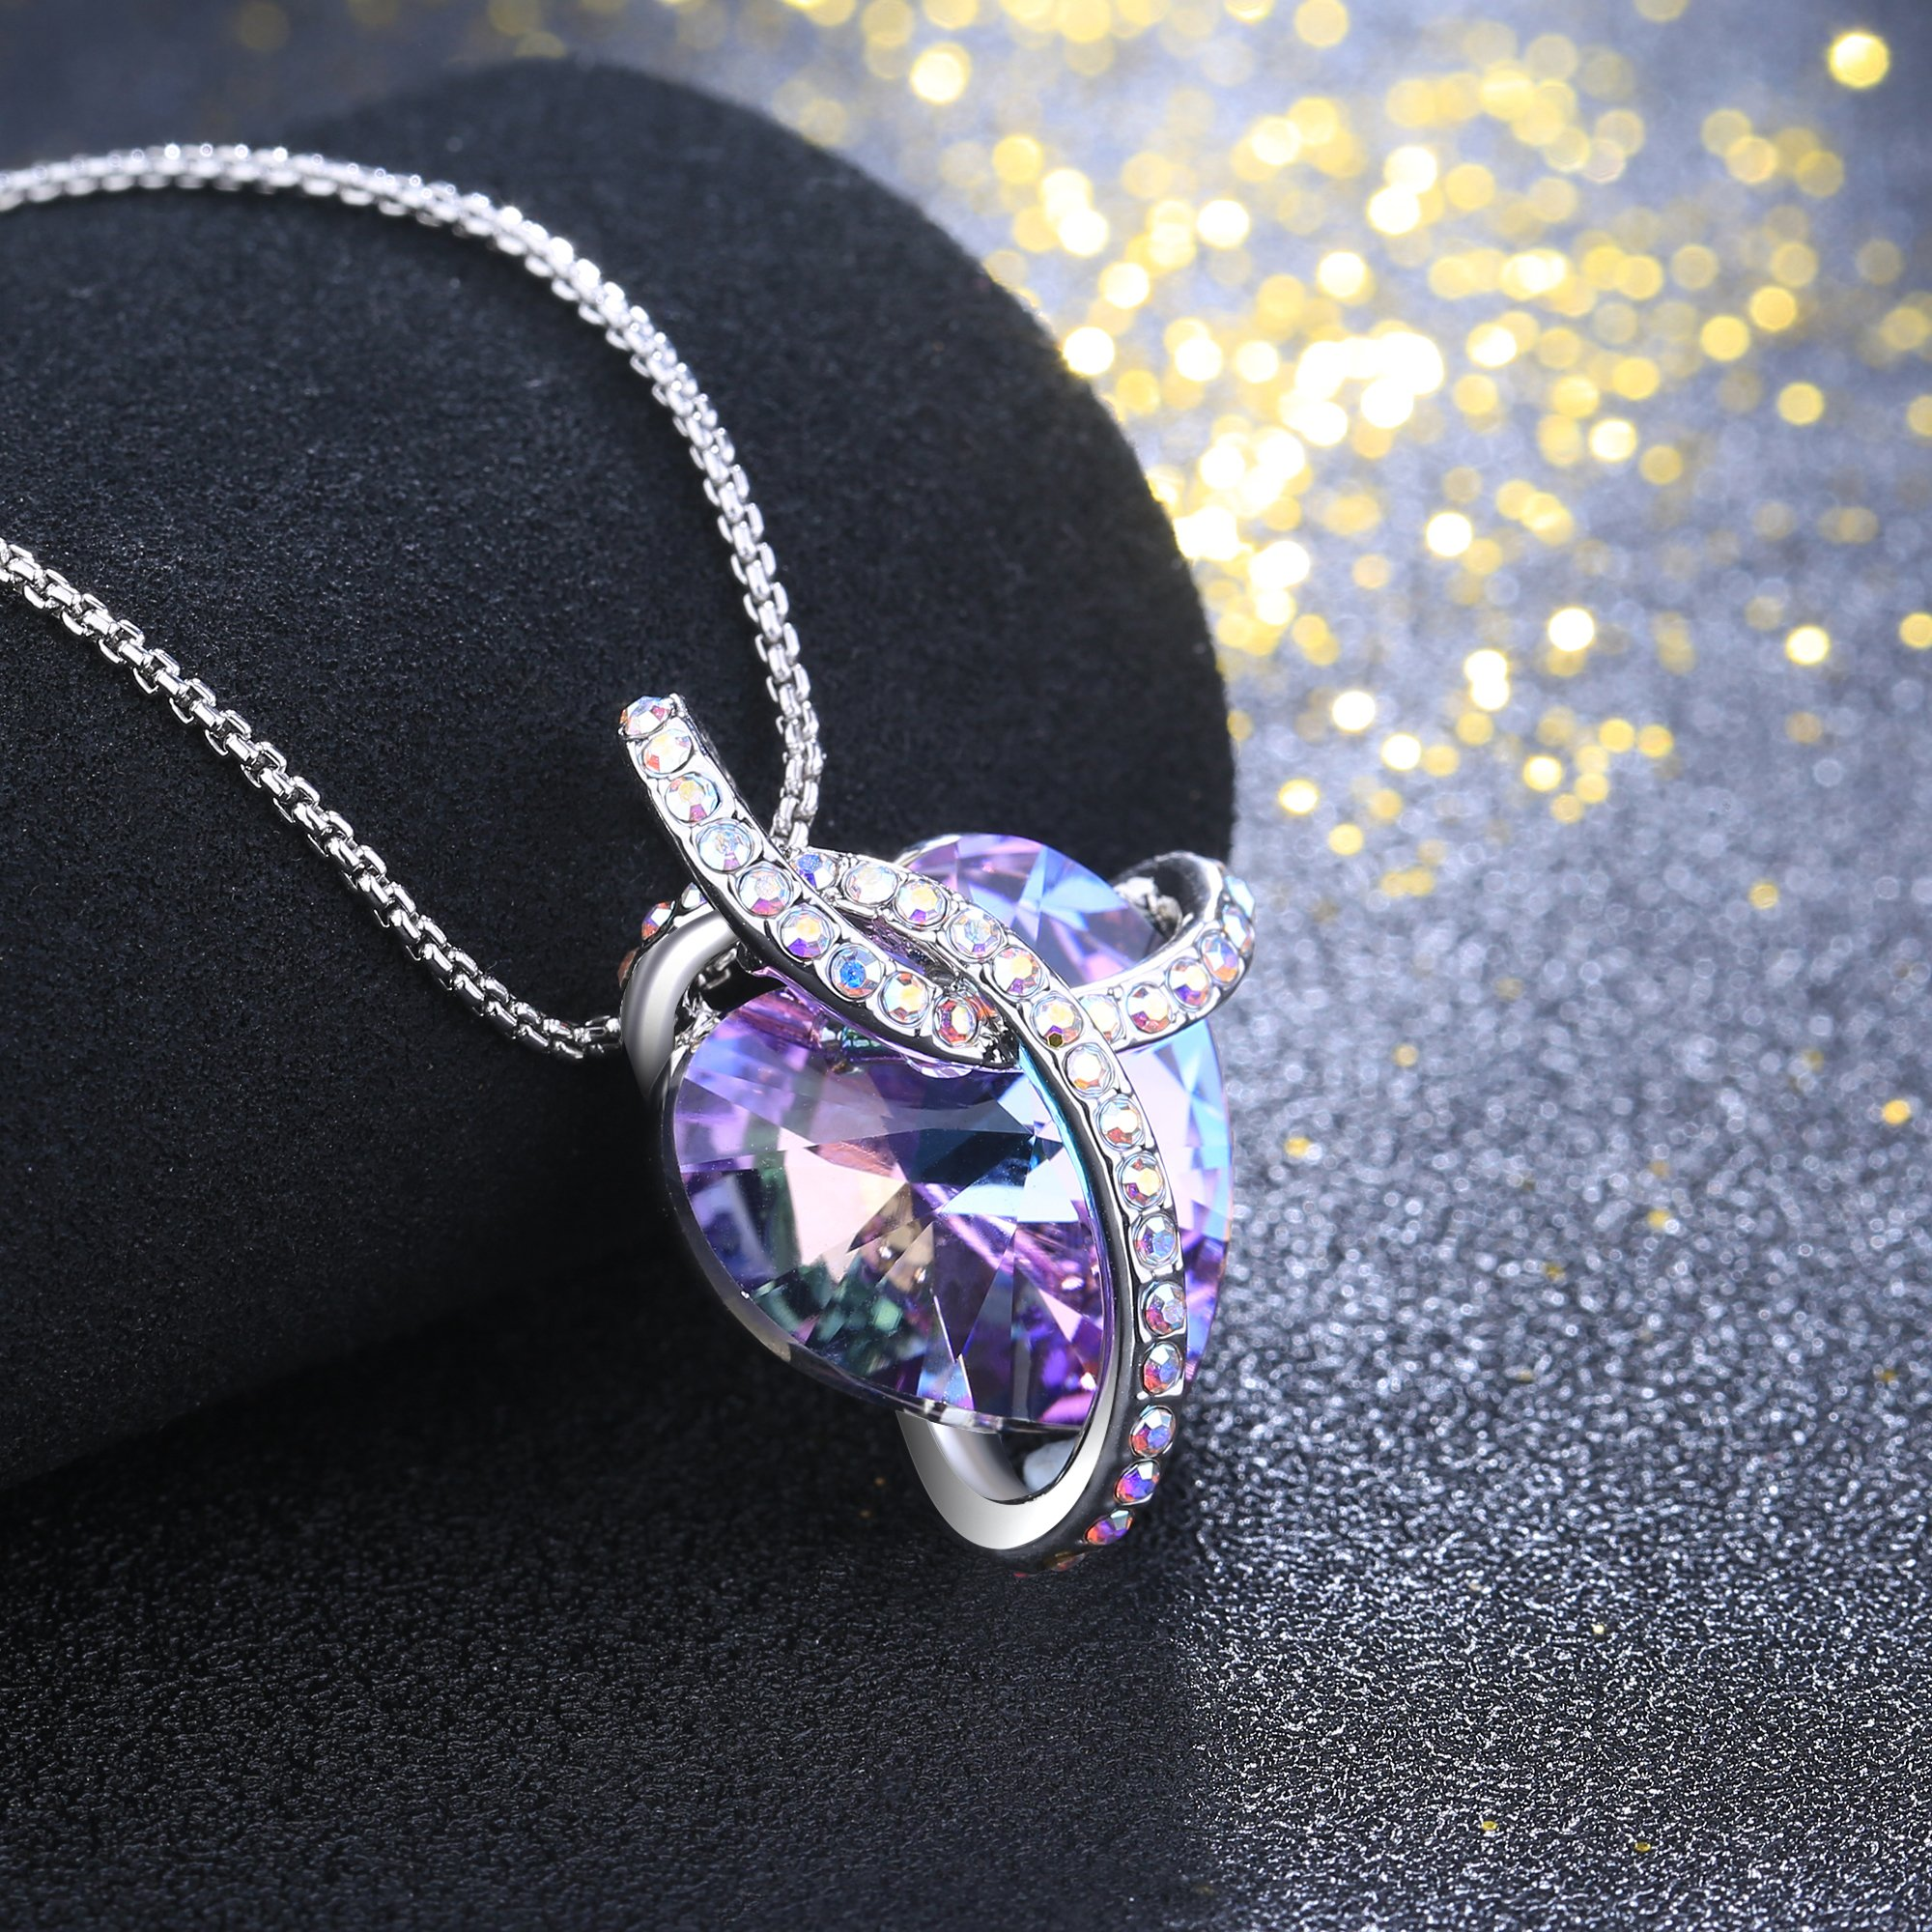 Angelady Gemstone Created Infinity Pendant Necklace Gifts for Women Girls Crystal from Swarovski (1) Wife Present Graduation souvenir